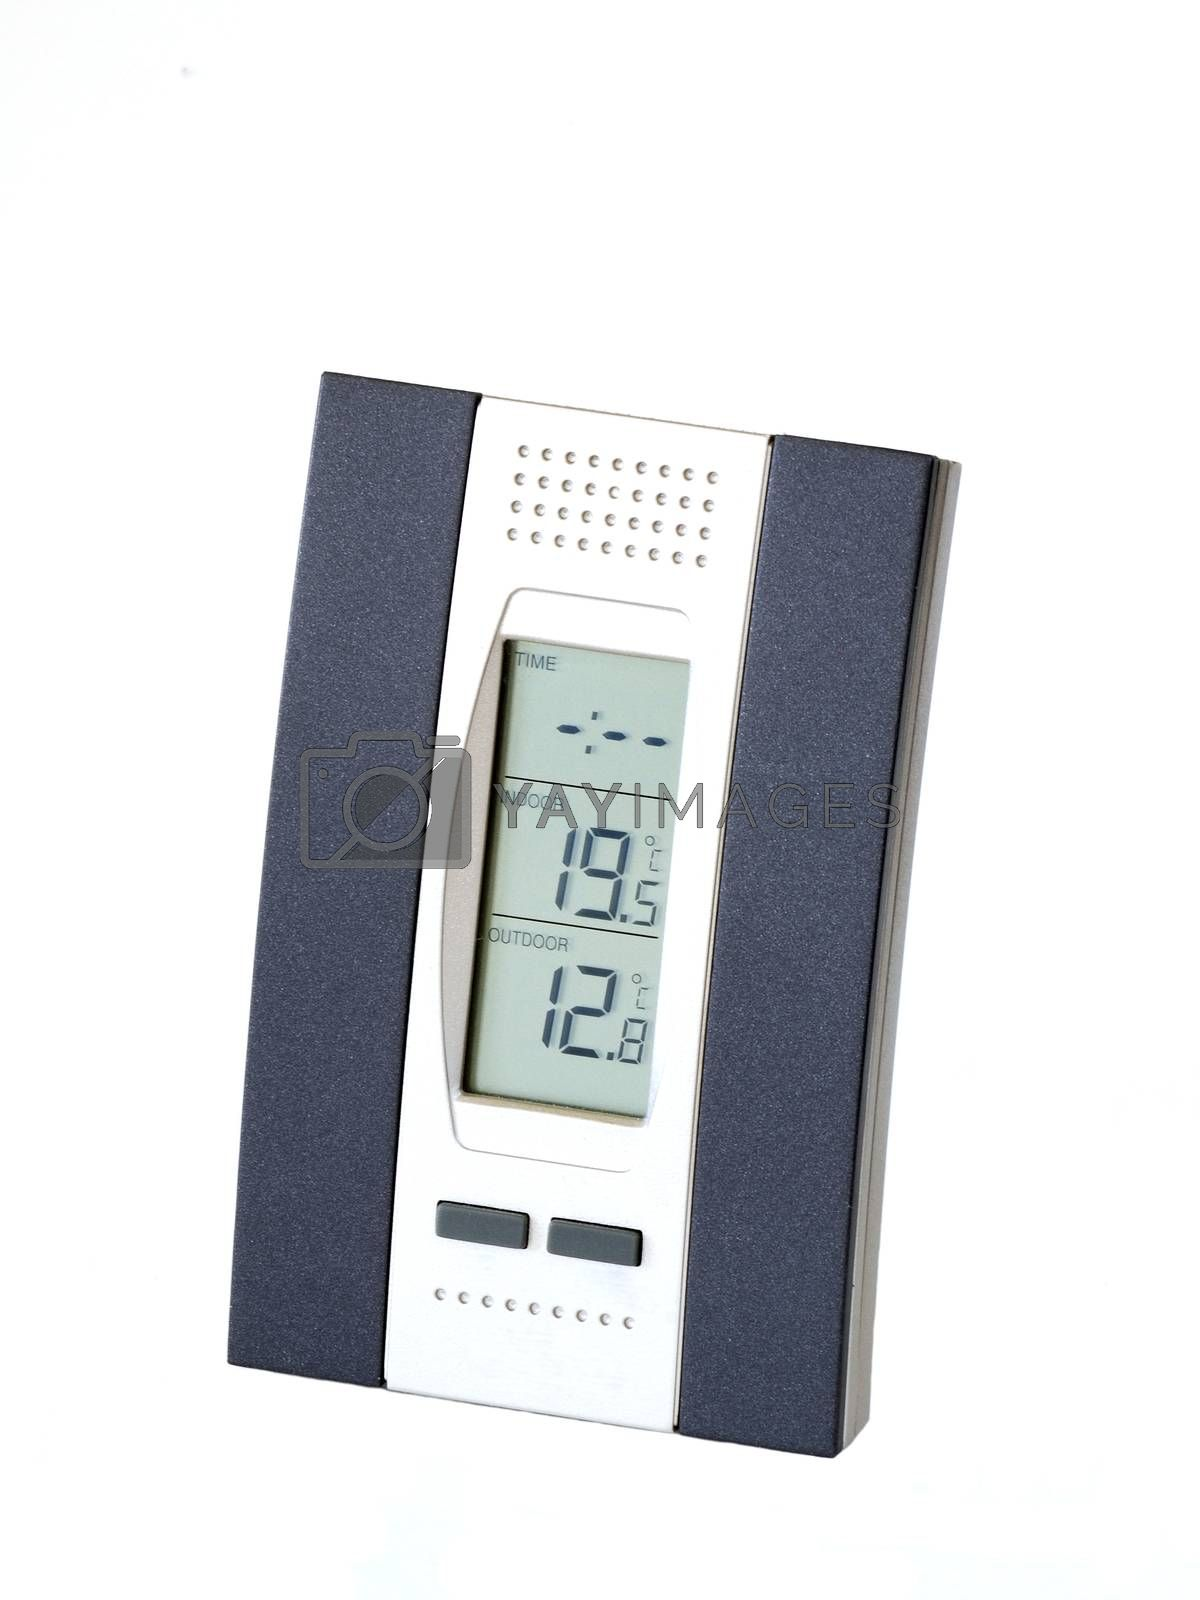 Modern weather station, isolated on white background.